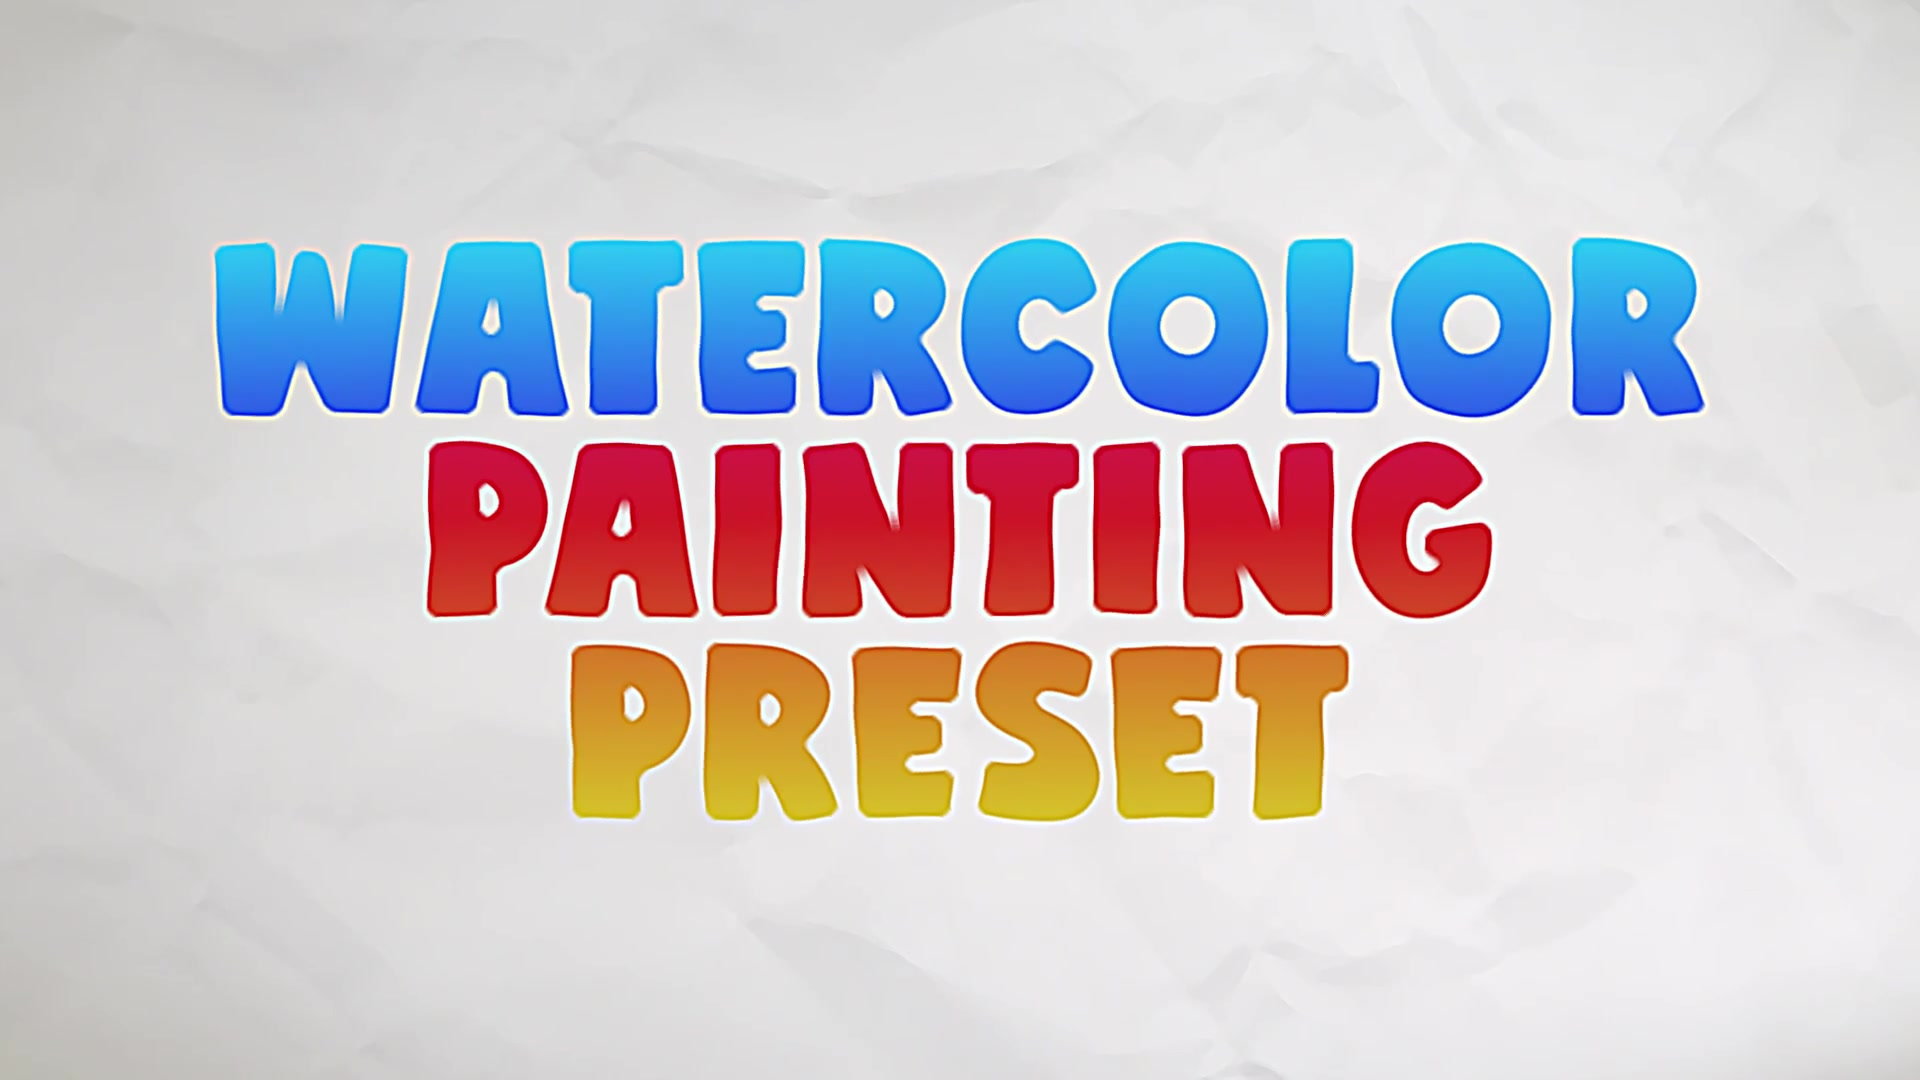 Watercolor Painting Preset Videohive 28737316 After Effects Image 9